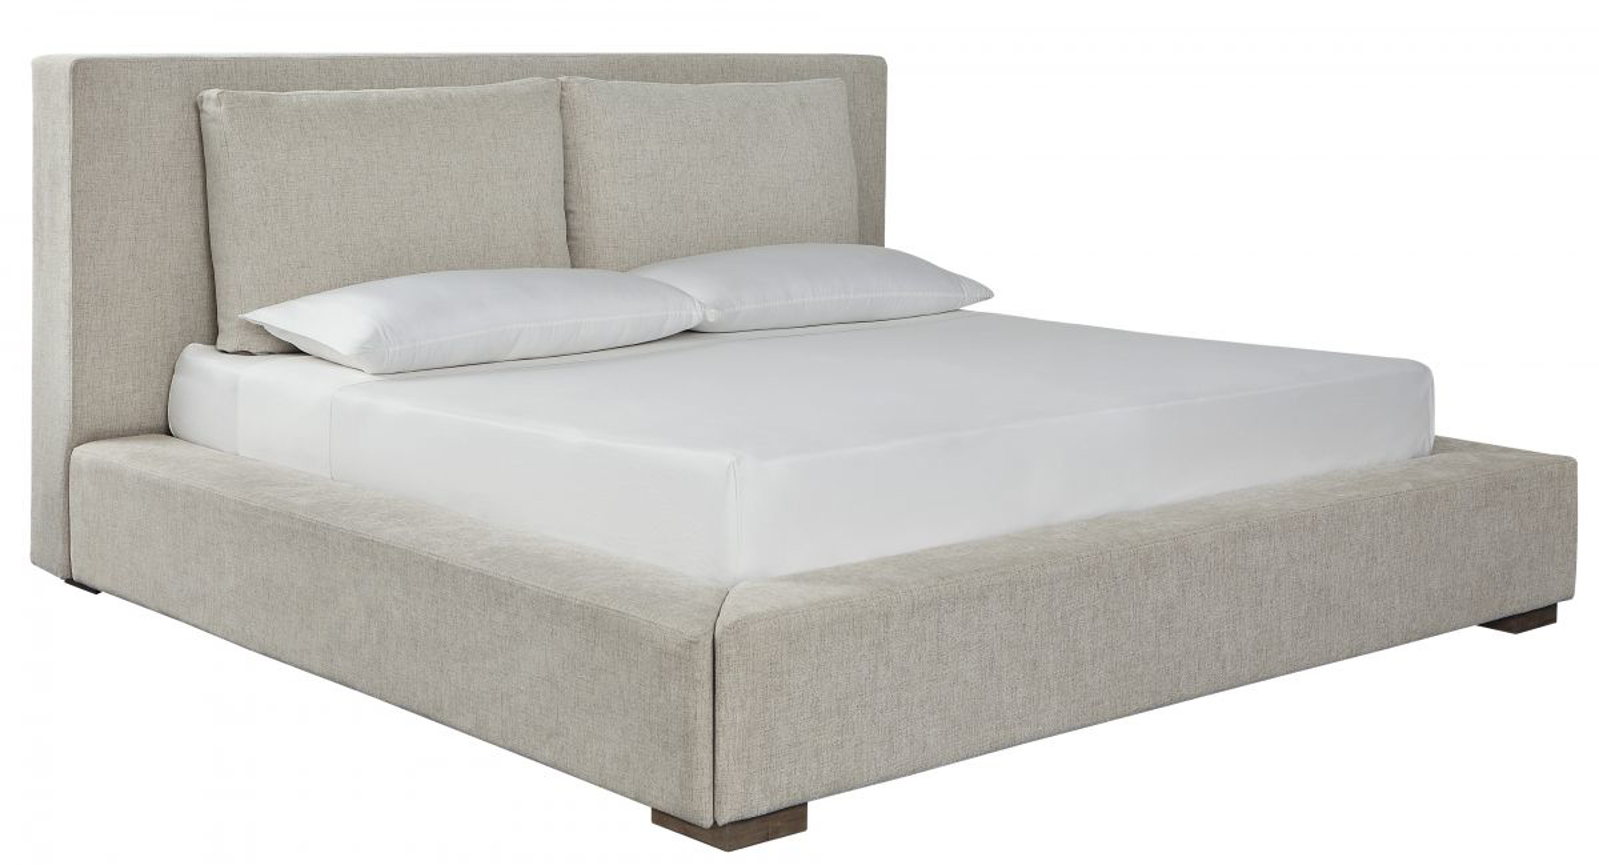 Picture of Langford King Size Bed